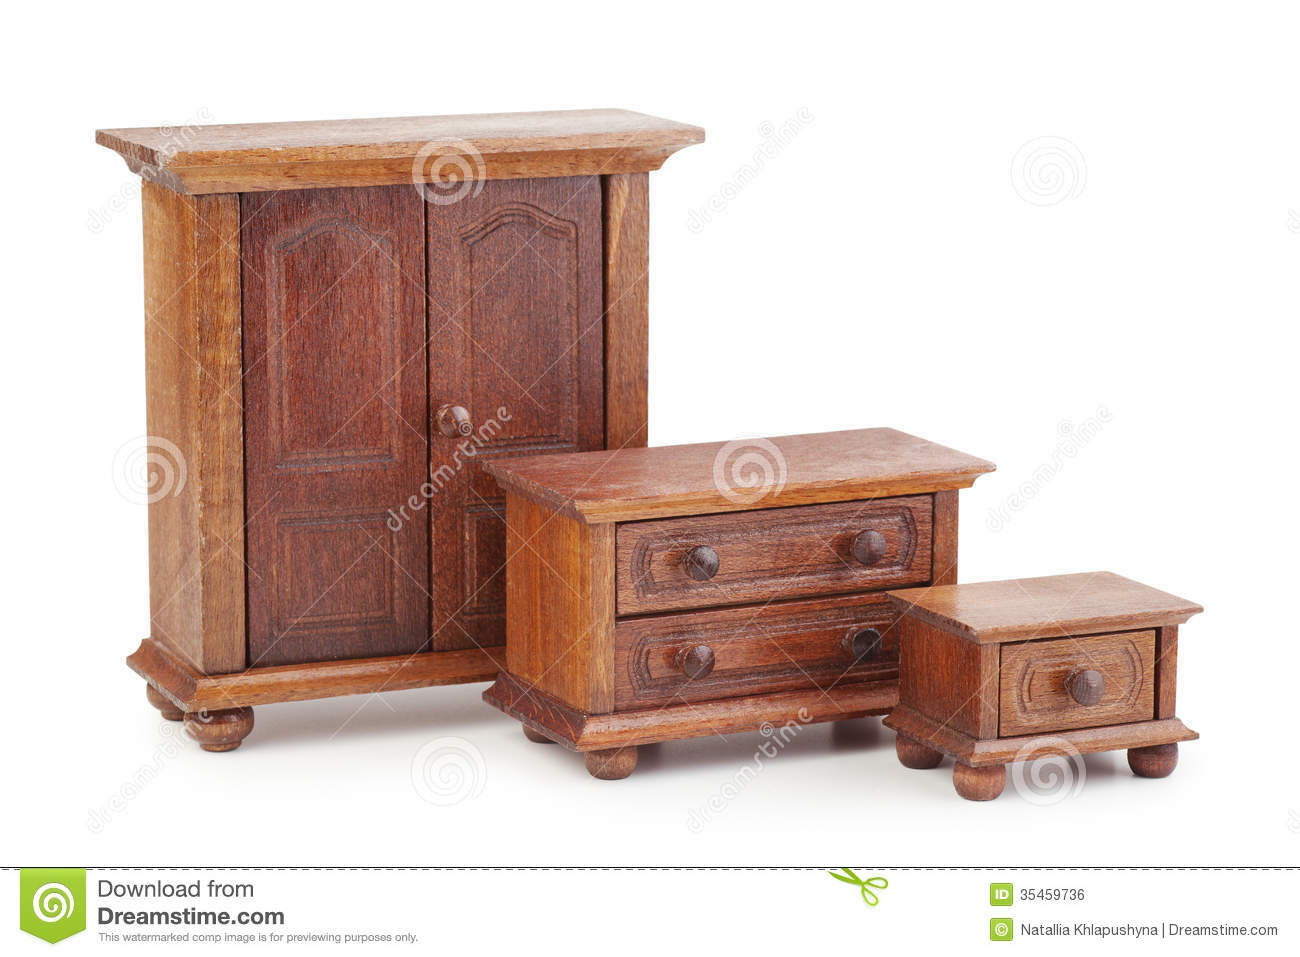 Doll wooden furniture set wardrobe chest of drawers and nights royalty free stock image - Furnitur photos ...